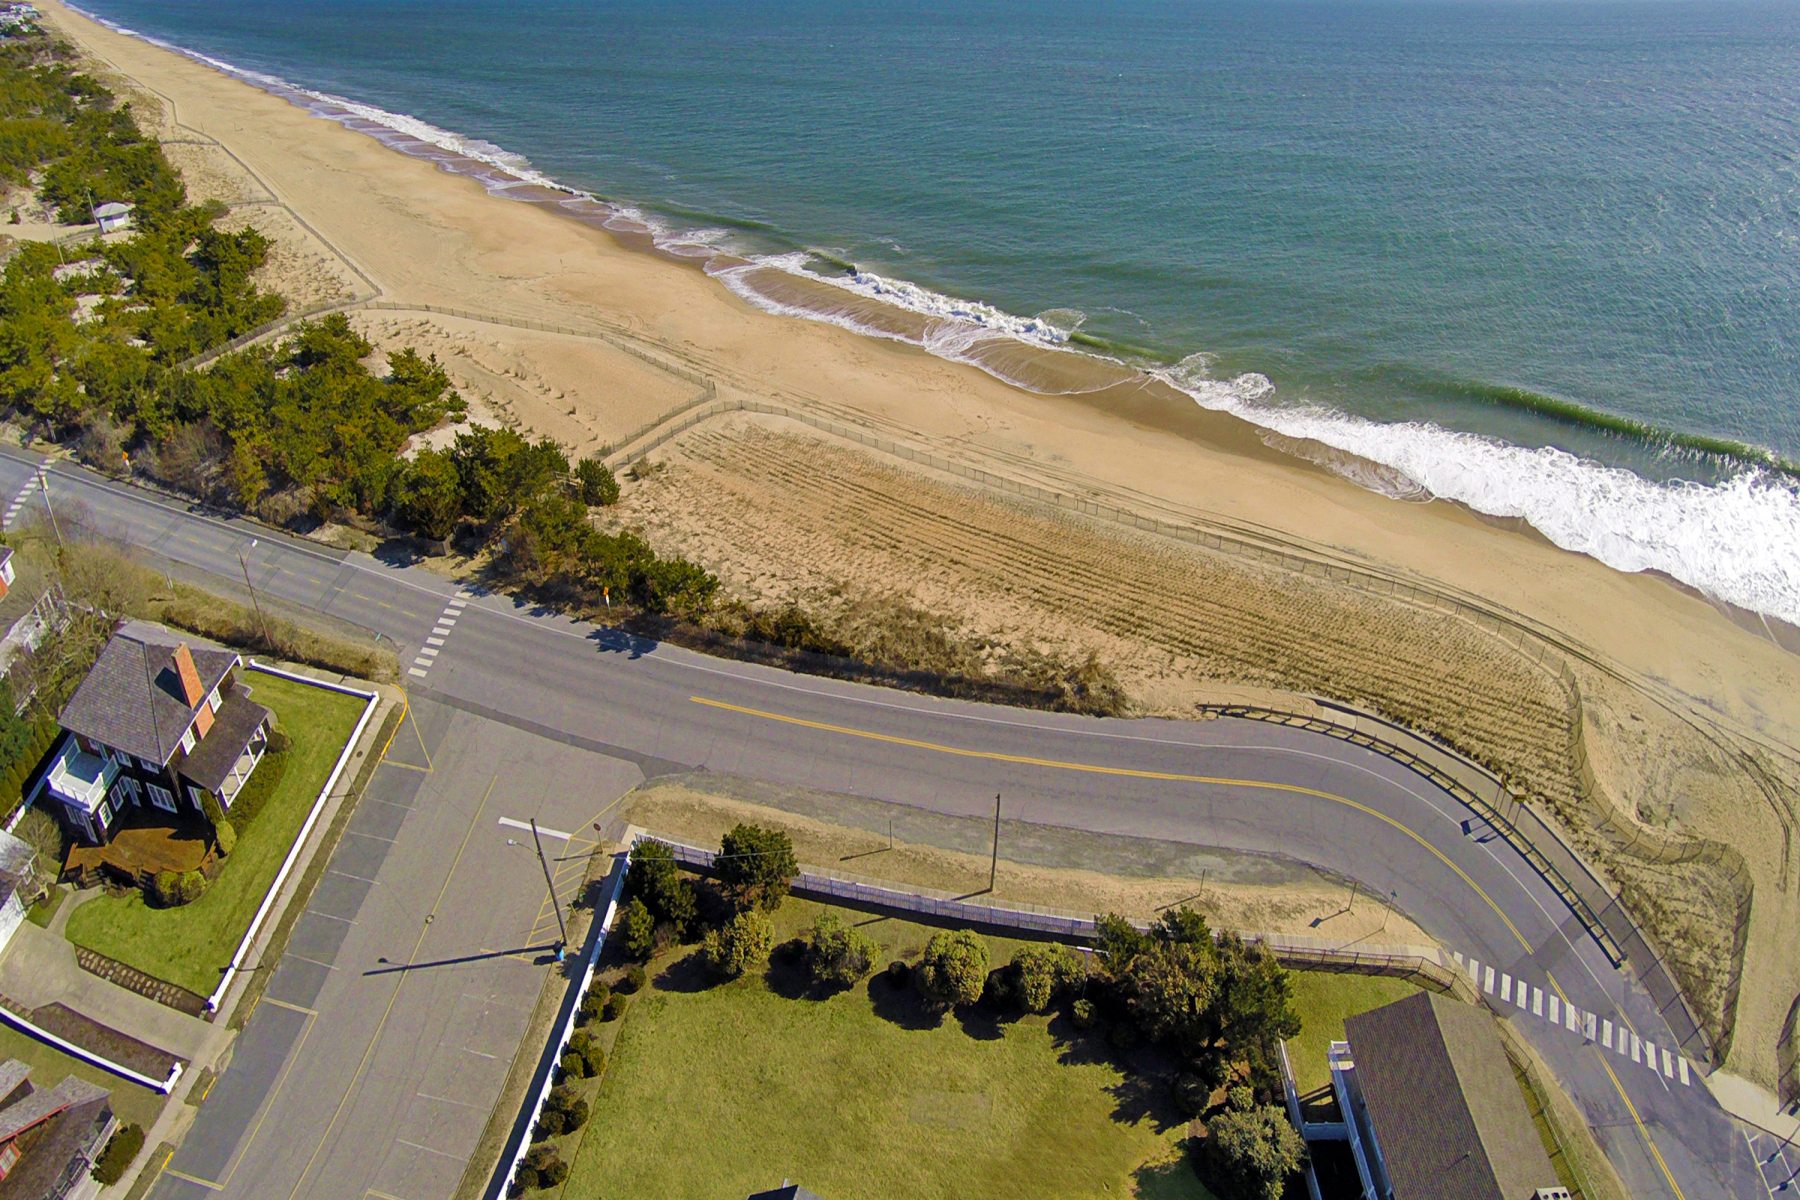 Property For Sale at 36 Surf Avenue, Rehoboth Beach, DE 19971